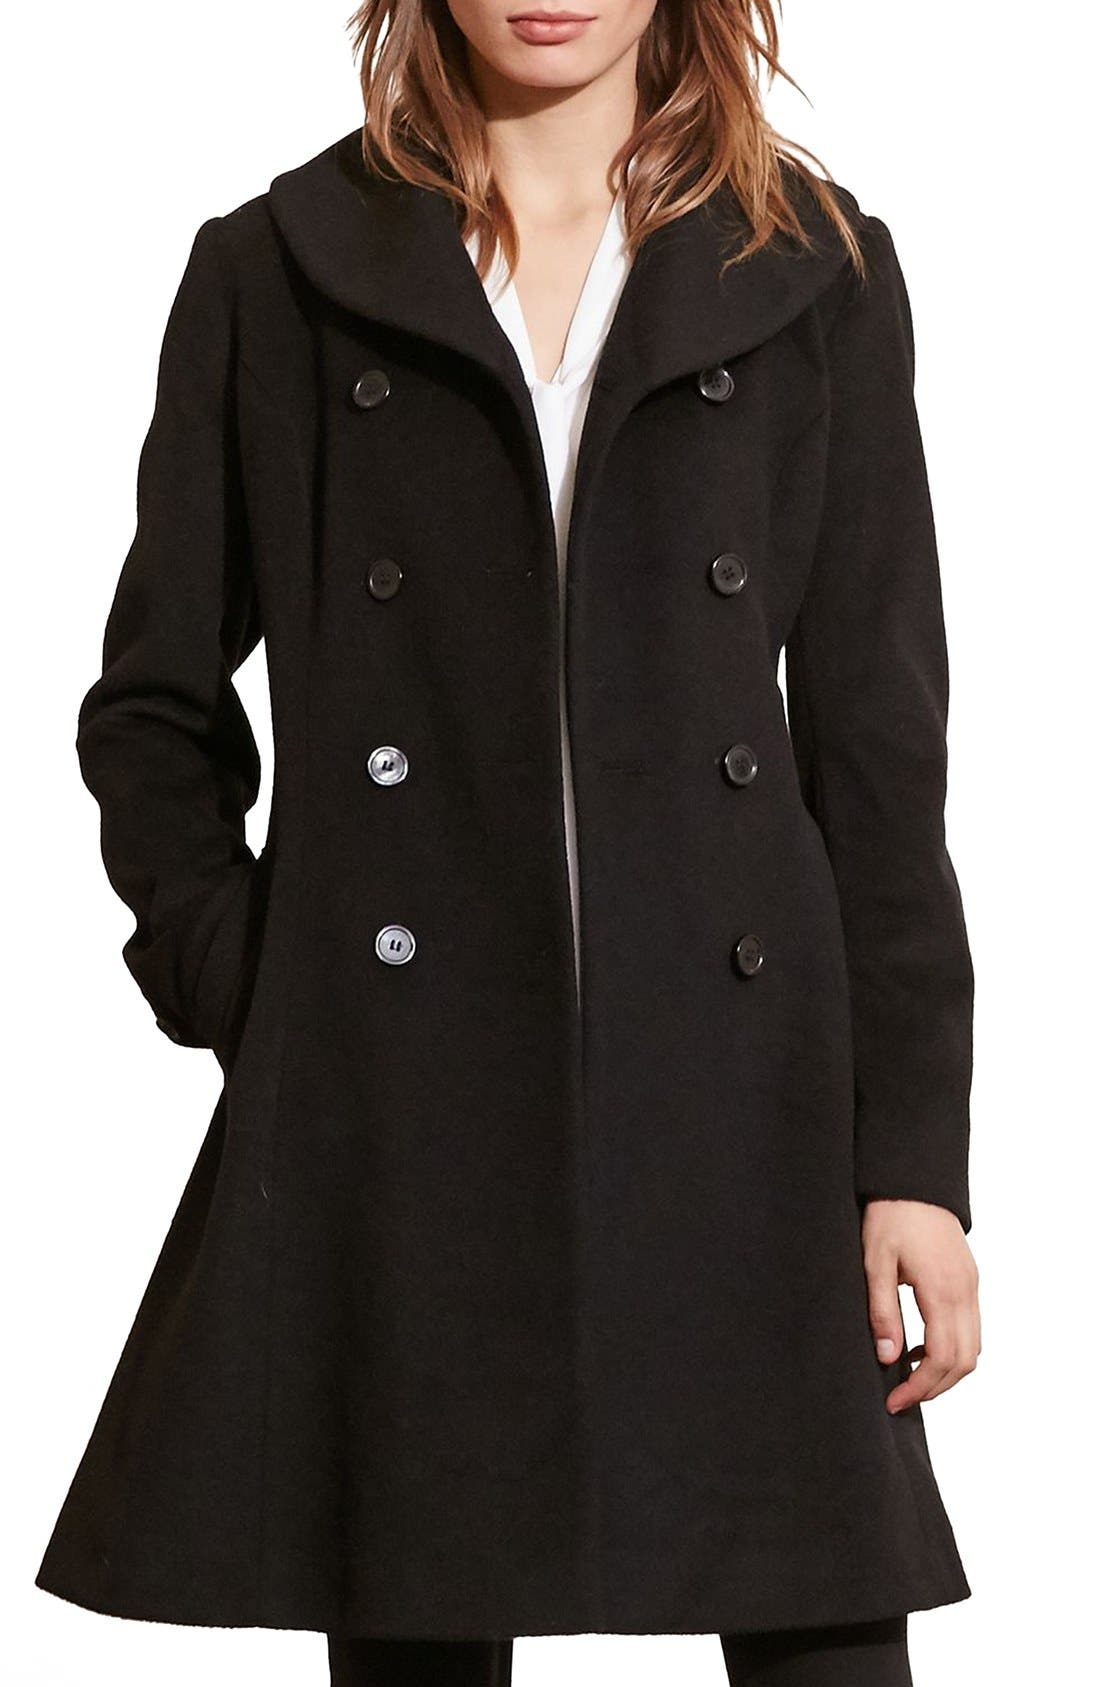 Alternate Image 1 Selected - Lauren Ralph Lauren Fit & Flare Military Coat